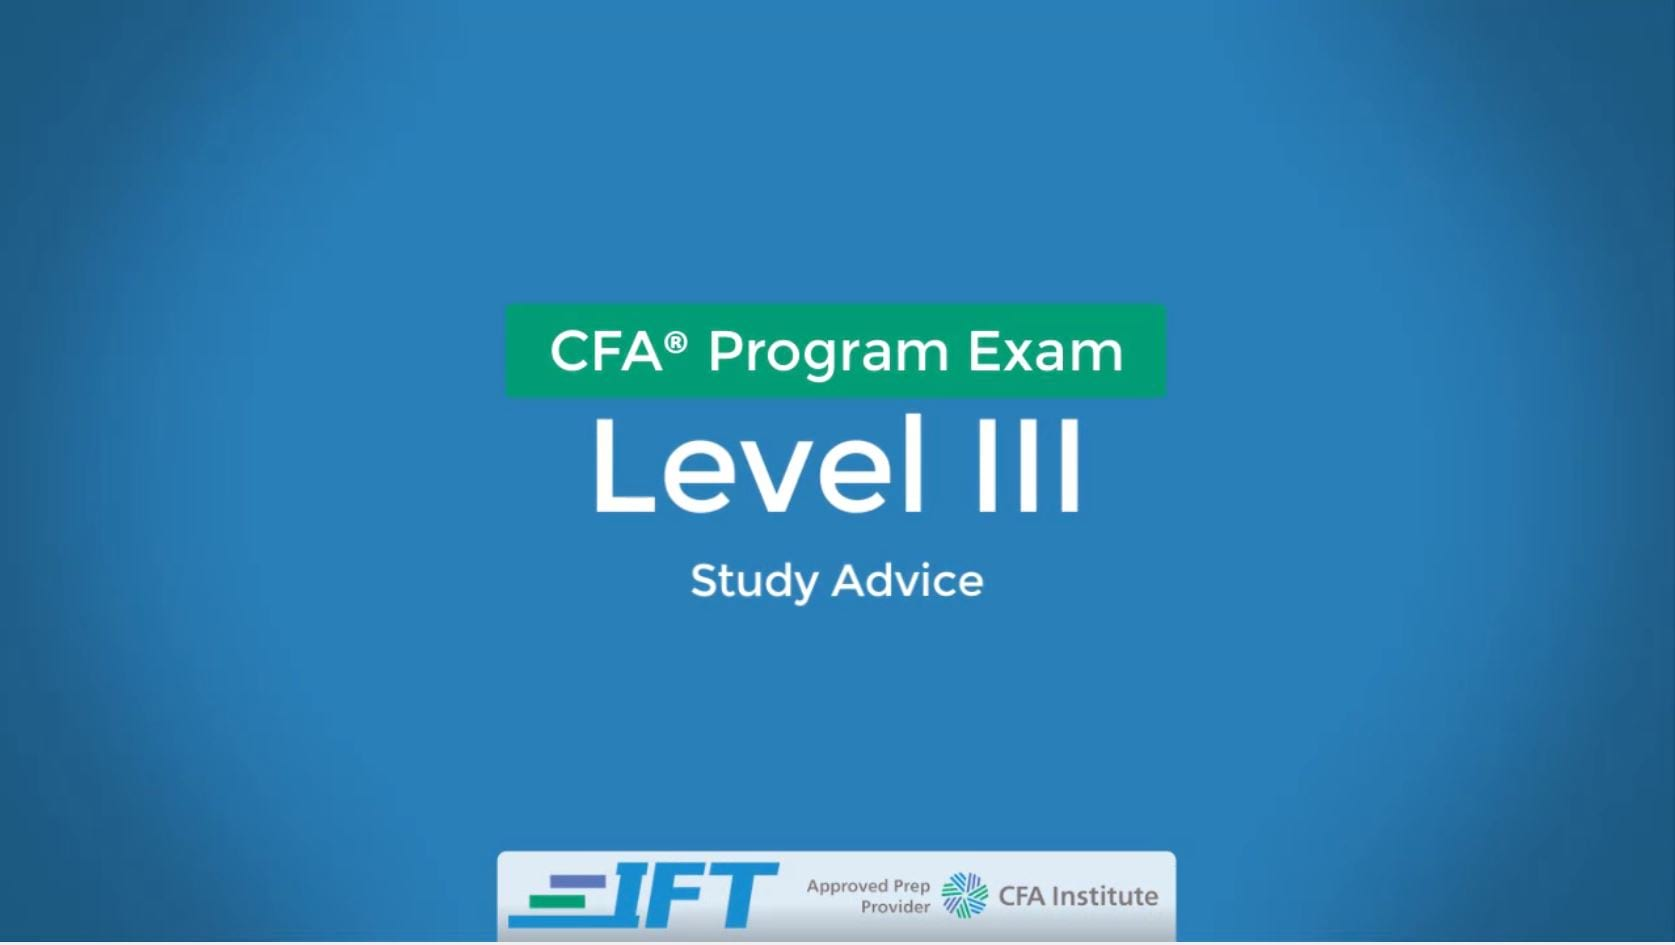 Final Word – Dec 2020 Level III CFA Exam Study Advice